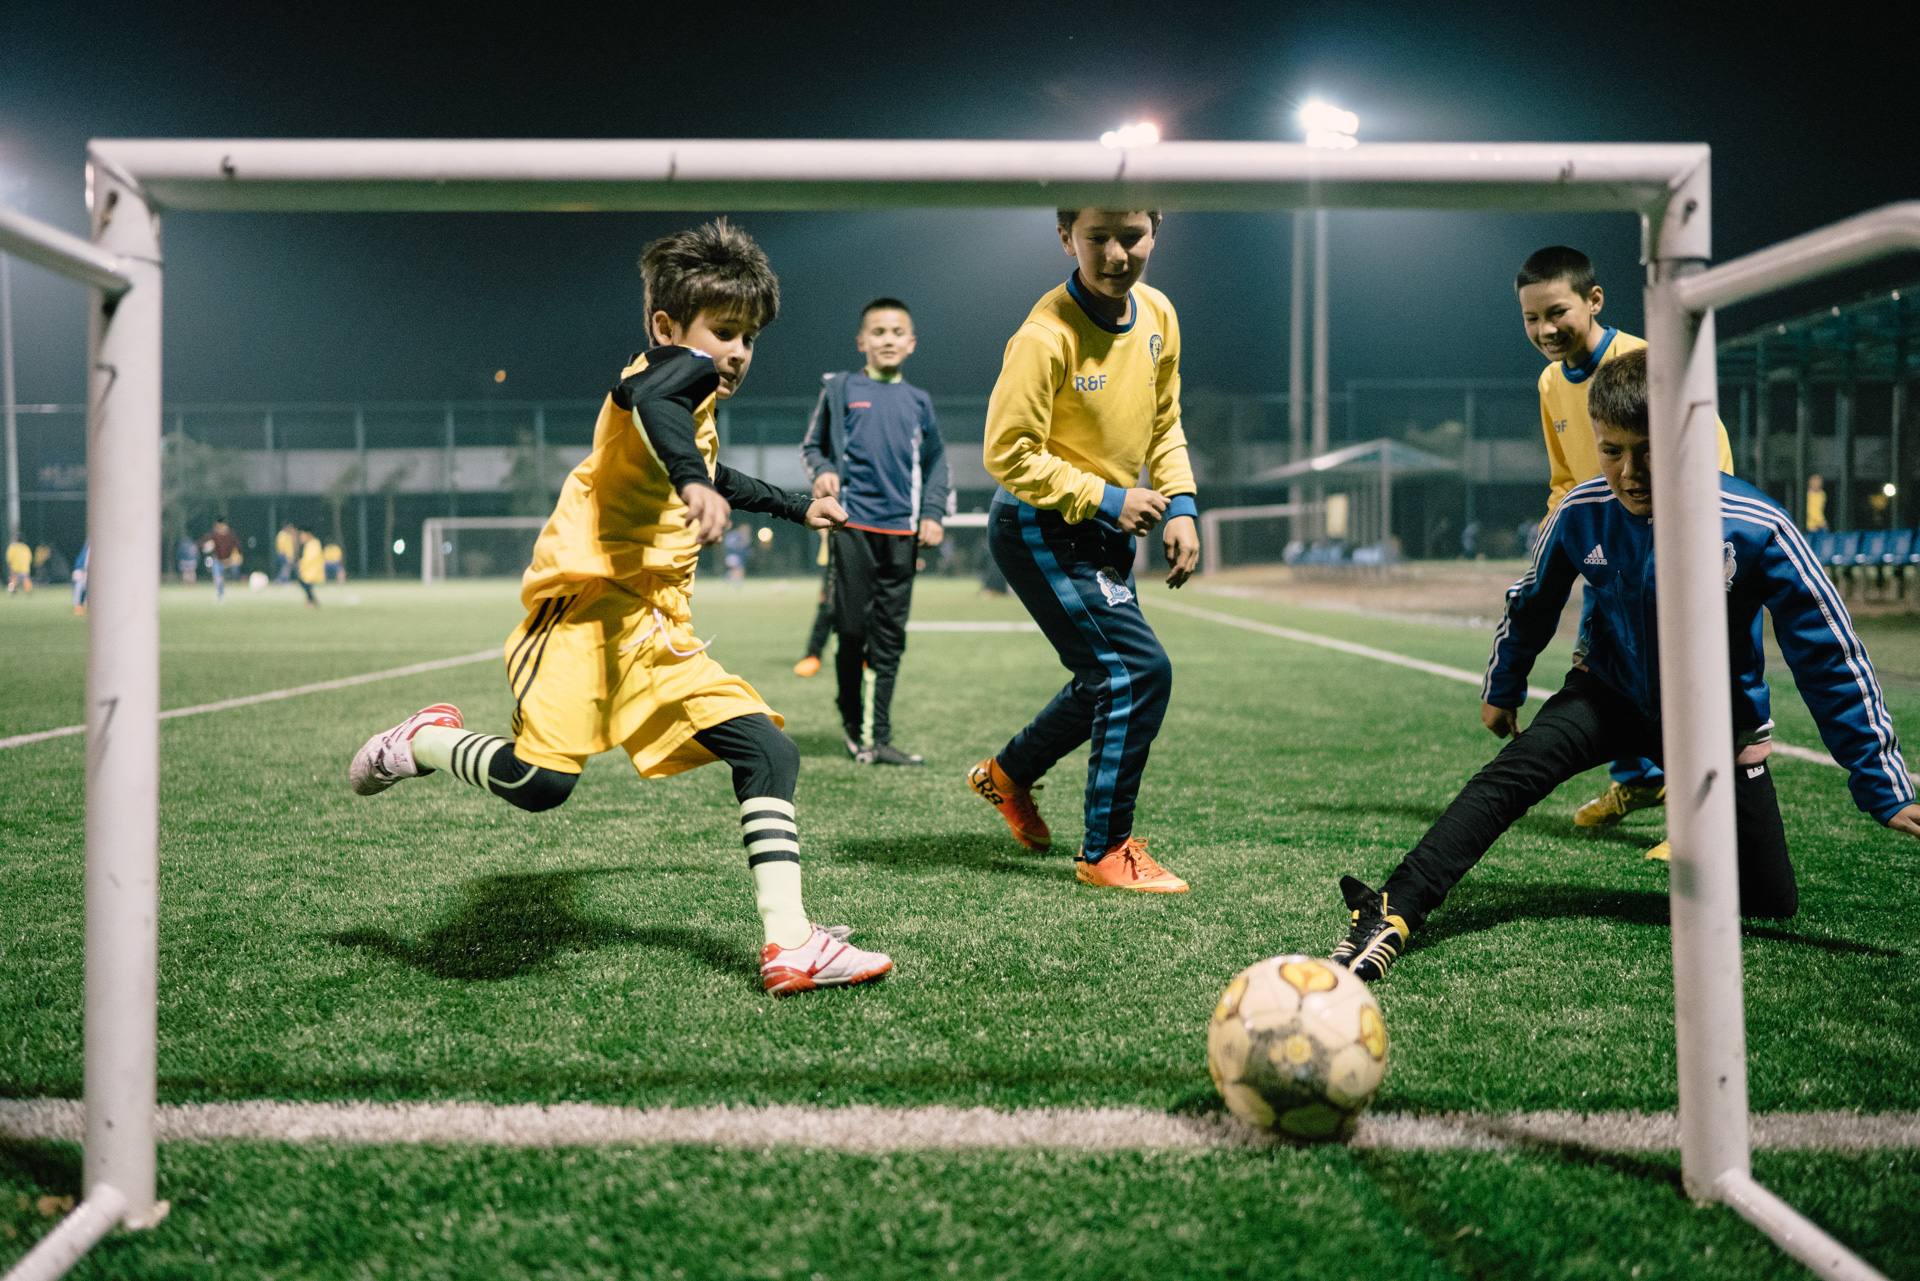 Muhammad trains at night. The Uyghur kids study in Meizhou R&F Socccer School, they usually spend about 13 hours a week training. March 17, 2016.